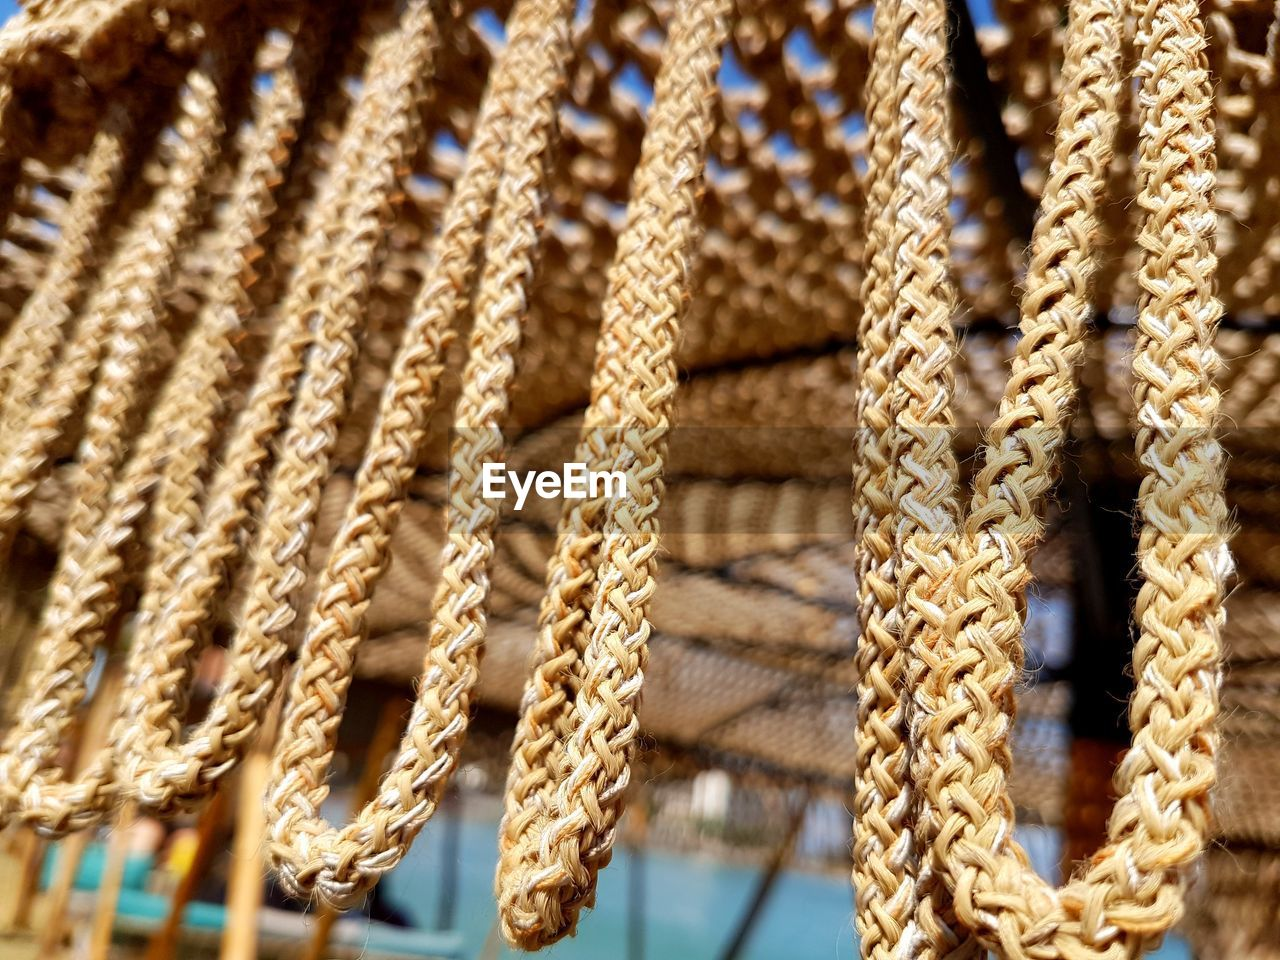 rope, close-up, no people, pattern, strength, backgrounds, focus on foreground, full frame, string, braided, textile, textured, day, repetition, brown, wood - material, selective focus, indoors, connection